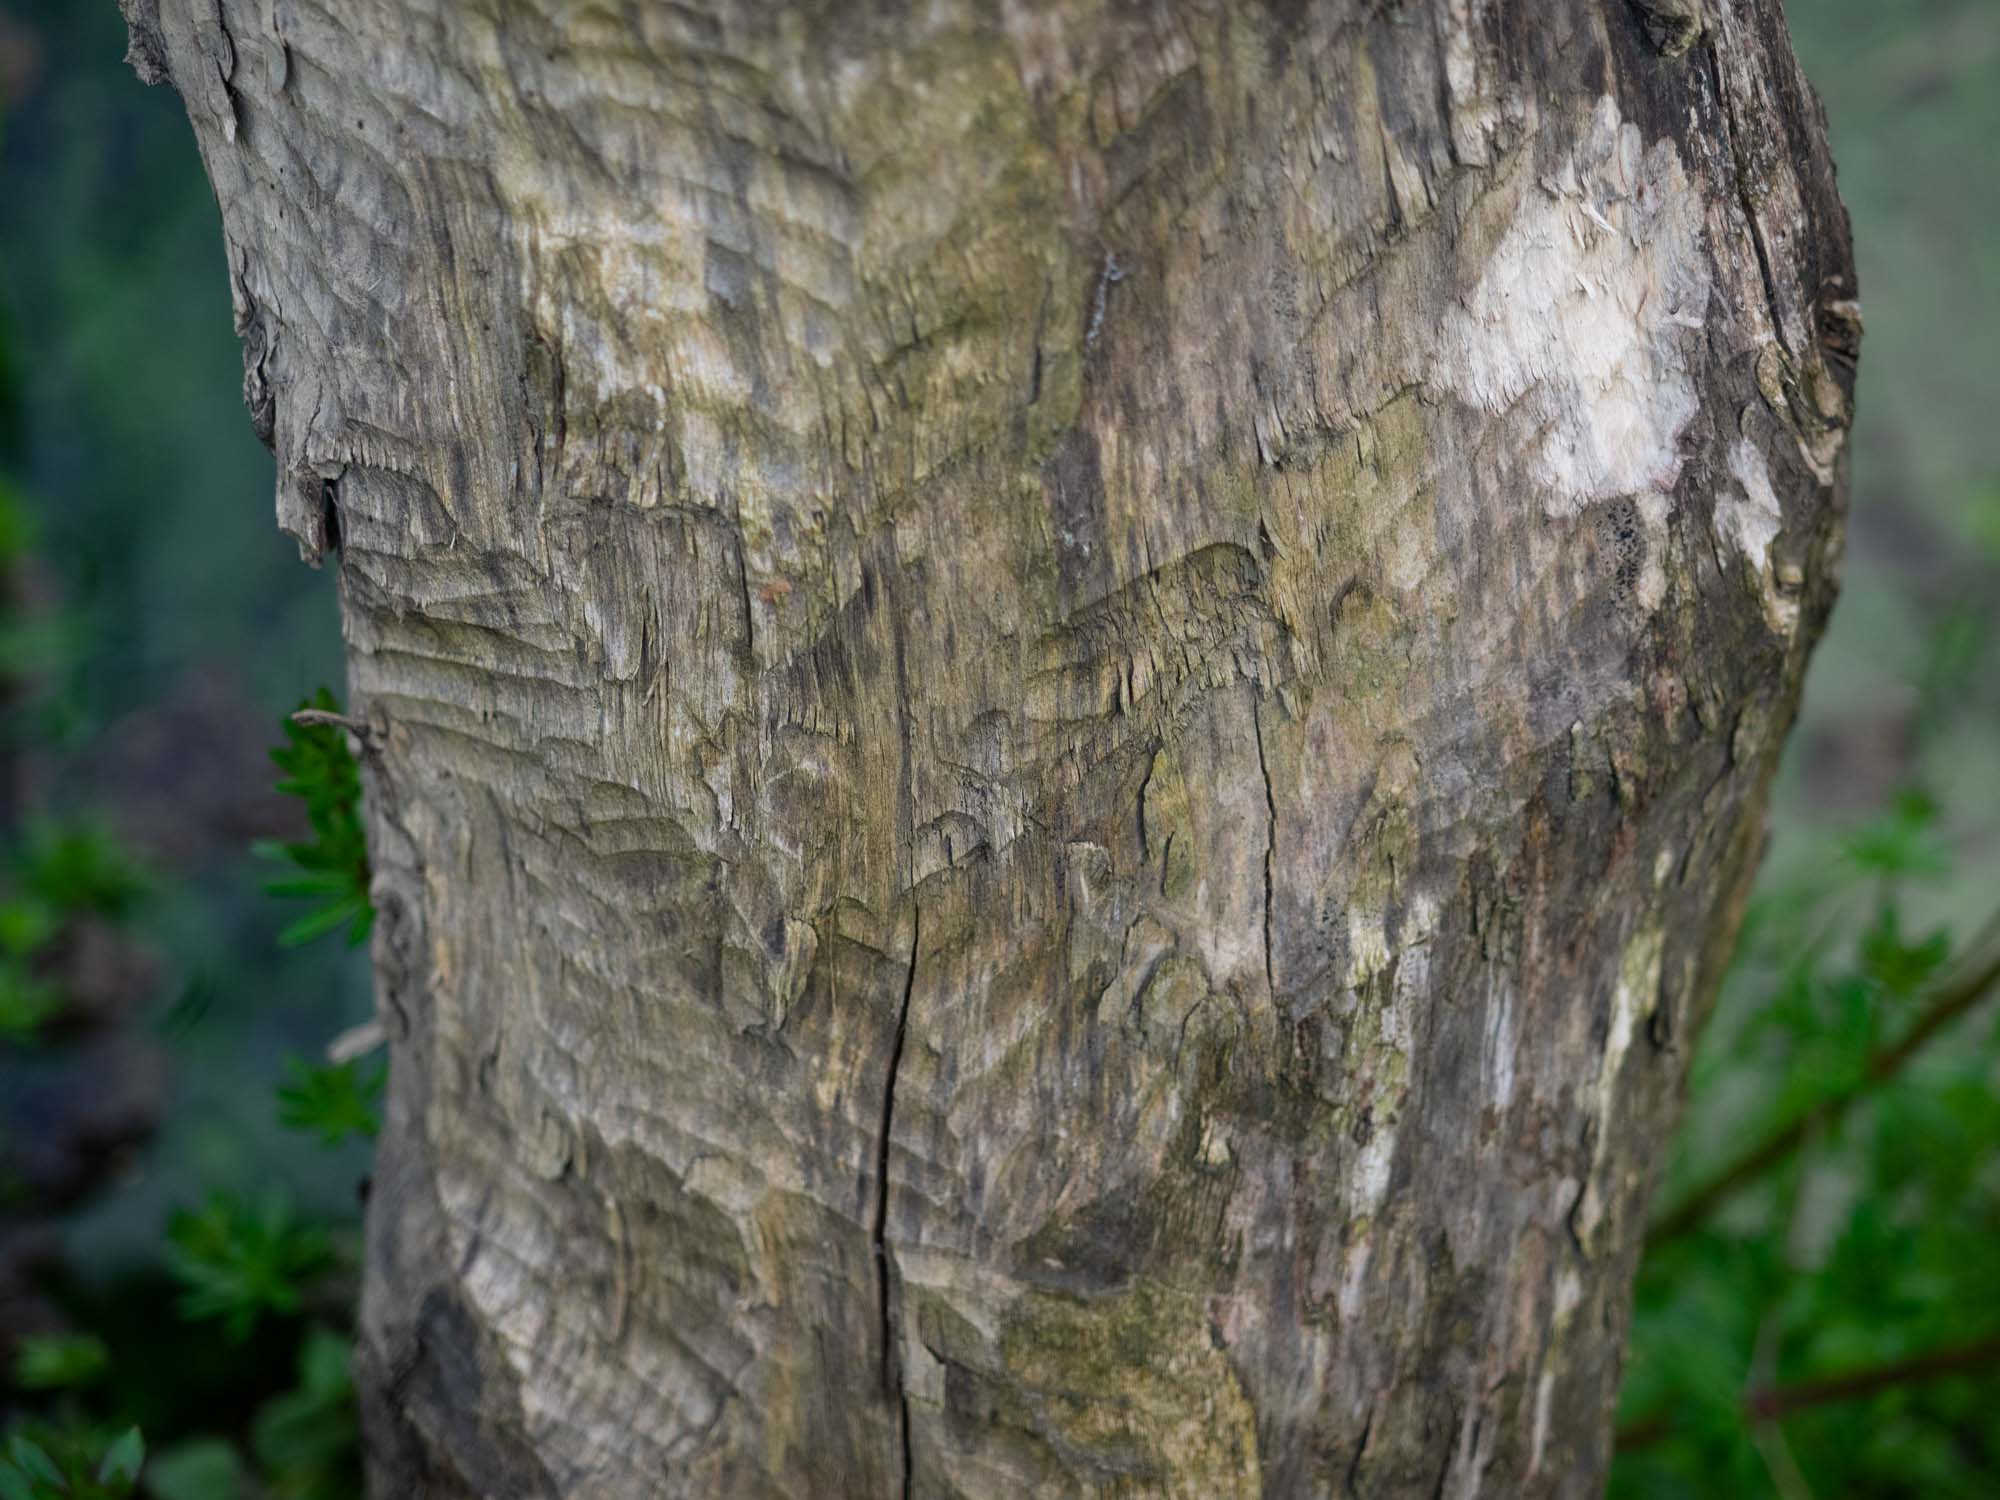 We didn't see any but beavers are known to live here - teeth marks on a tree trunk